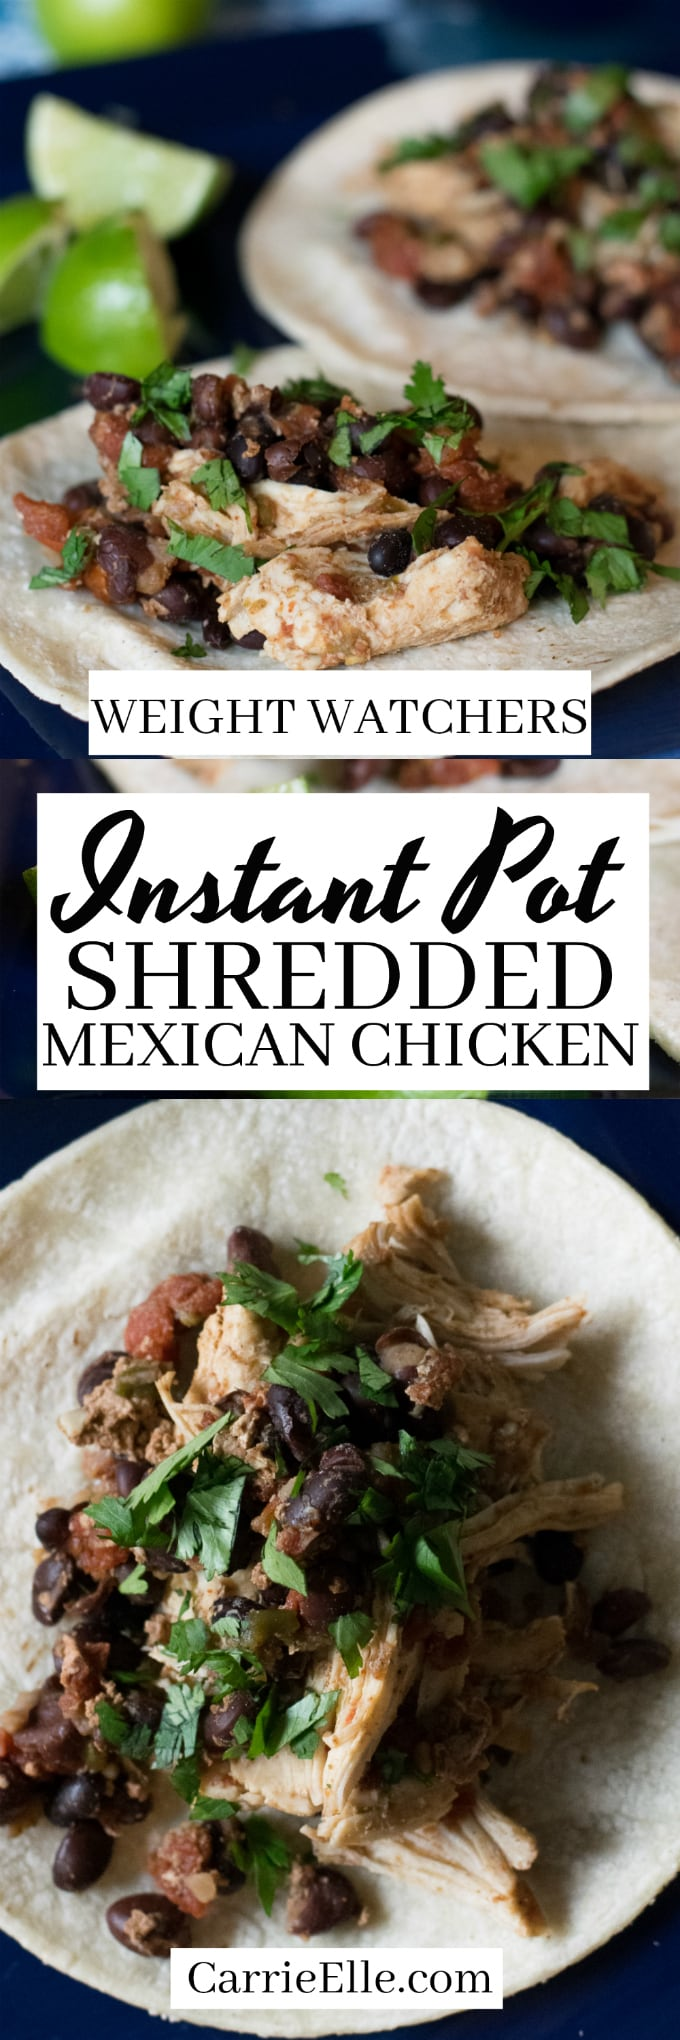 Weight Watchers Instant Pot Shredded Mexican Chicken